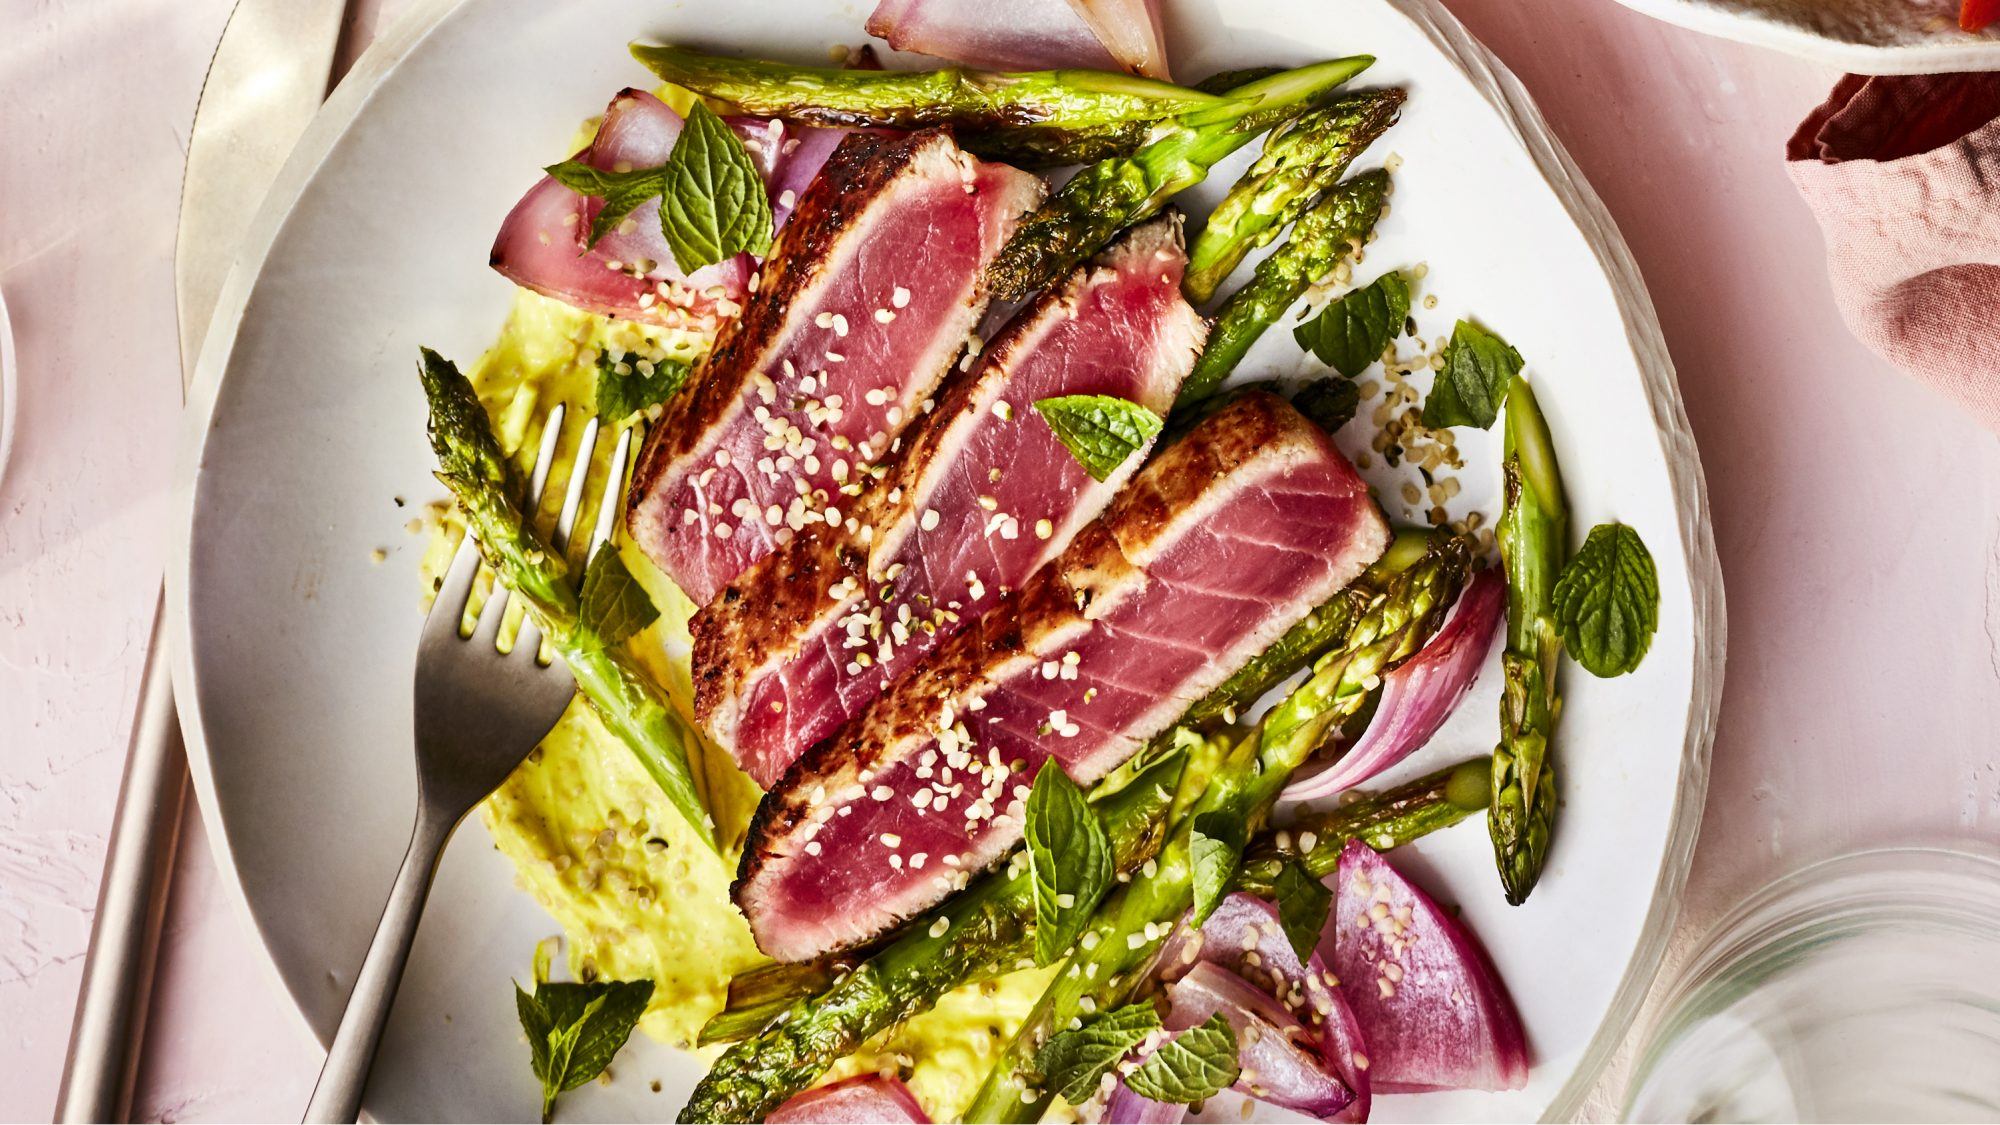 Tuna Steaks with Turmeric Dressing